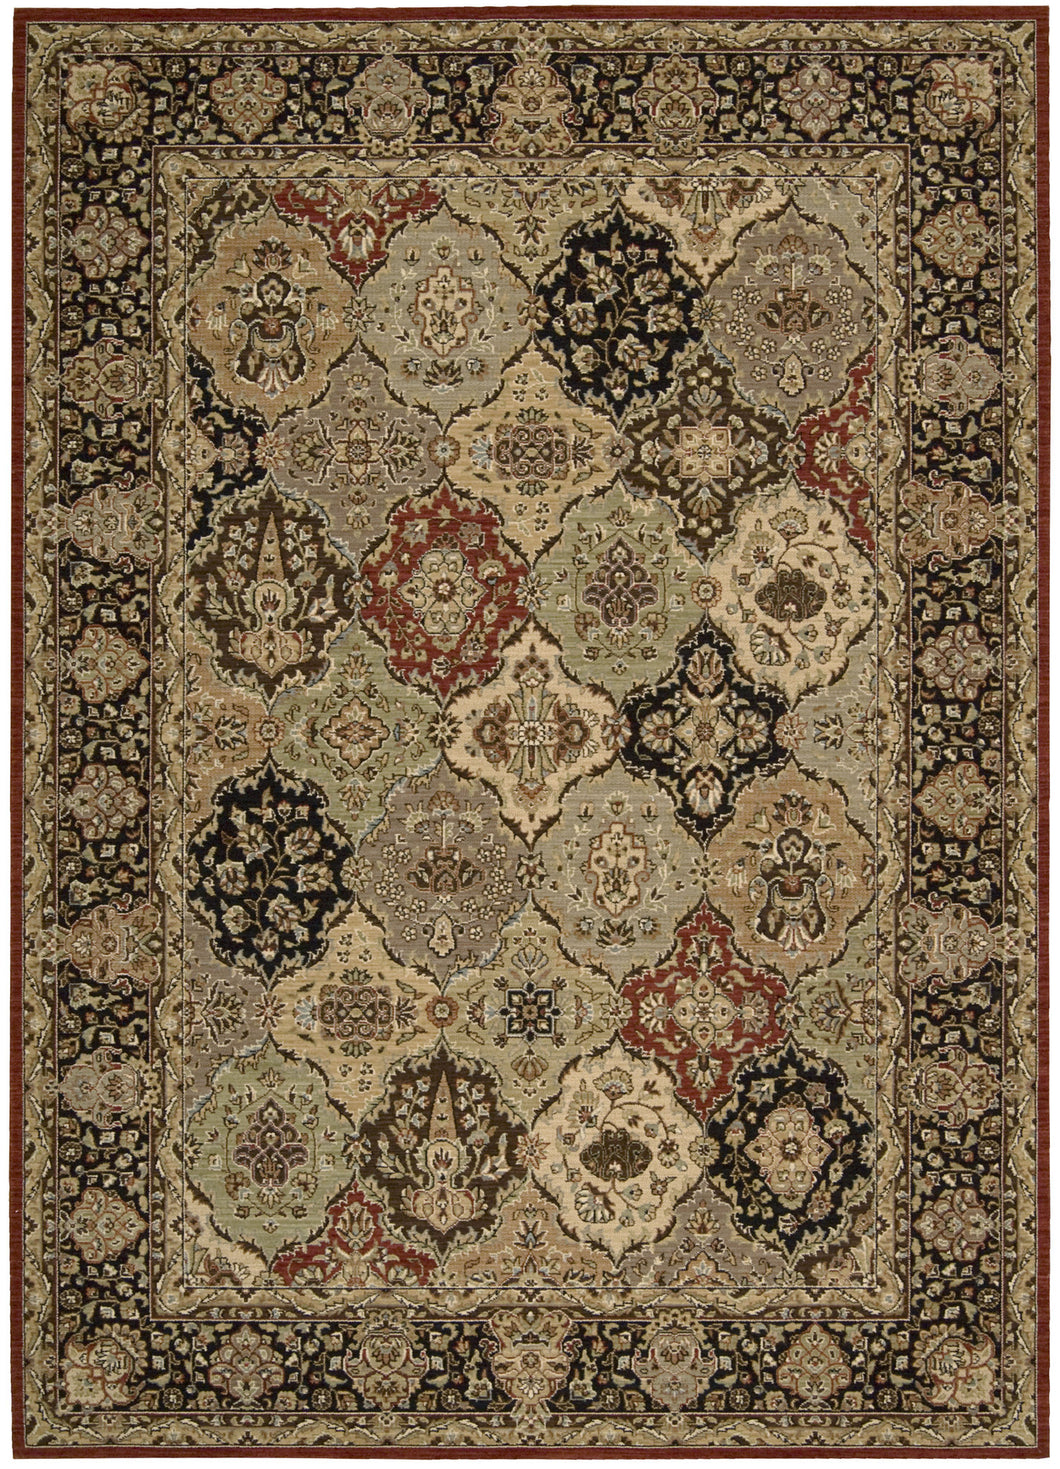 Kathy Ireland Lumiere Persian Tapestry Multicolor Area Rug By Nourison KI601 MTC